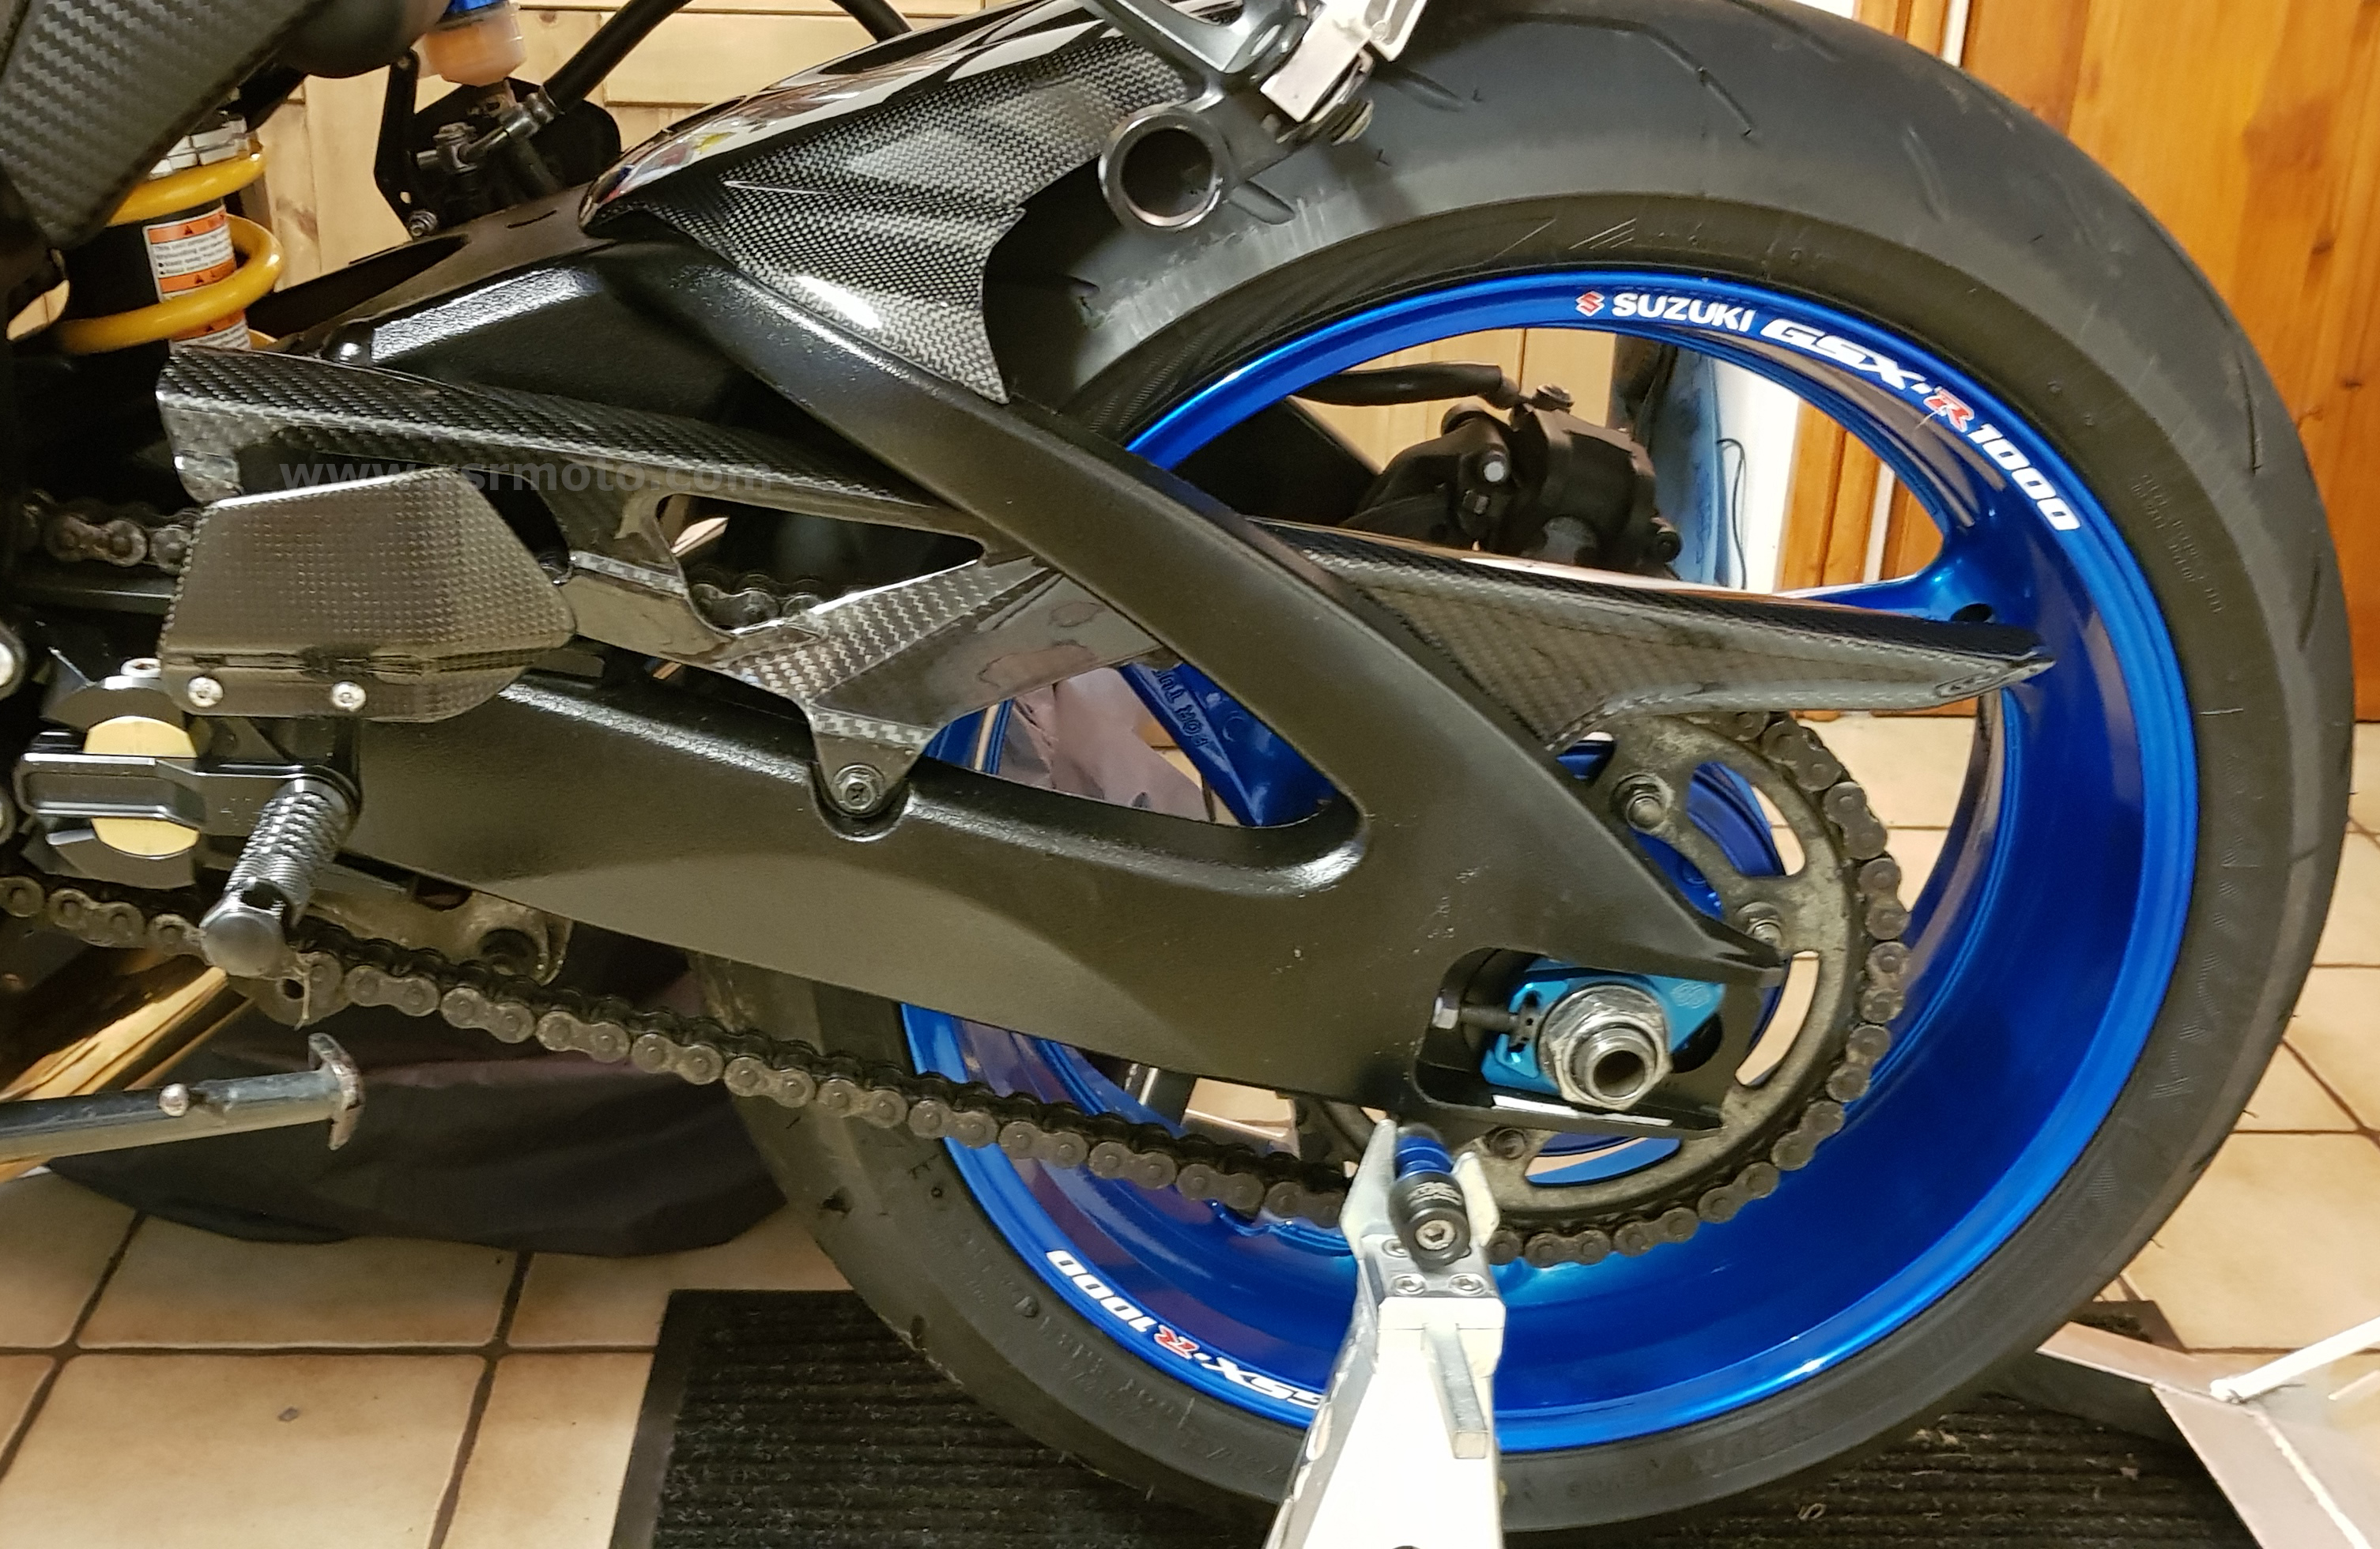 suzuki-gsxr1000-carbon-fibre-chain-guard.jpg